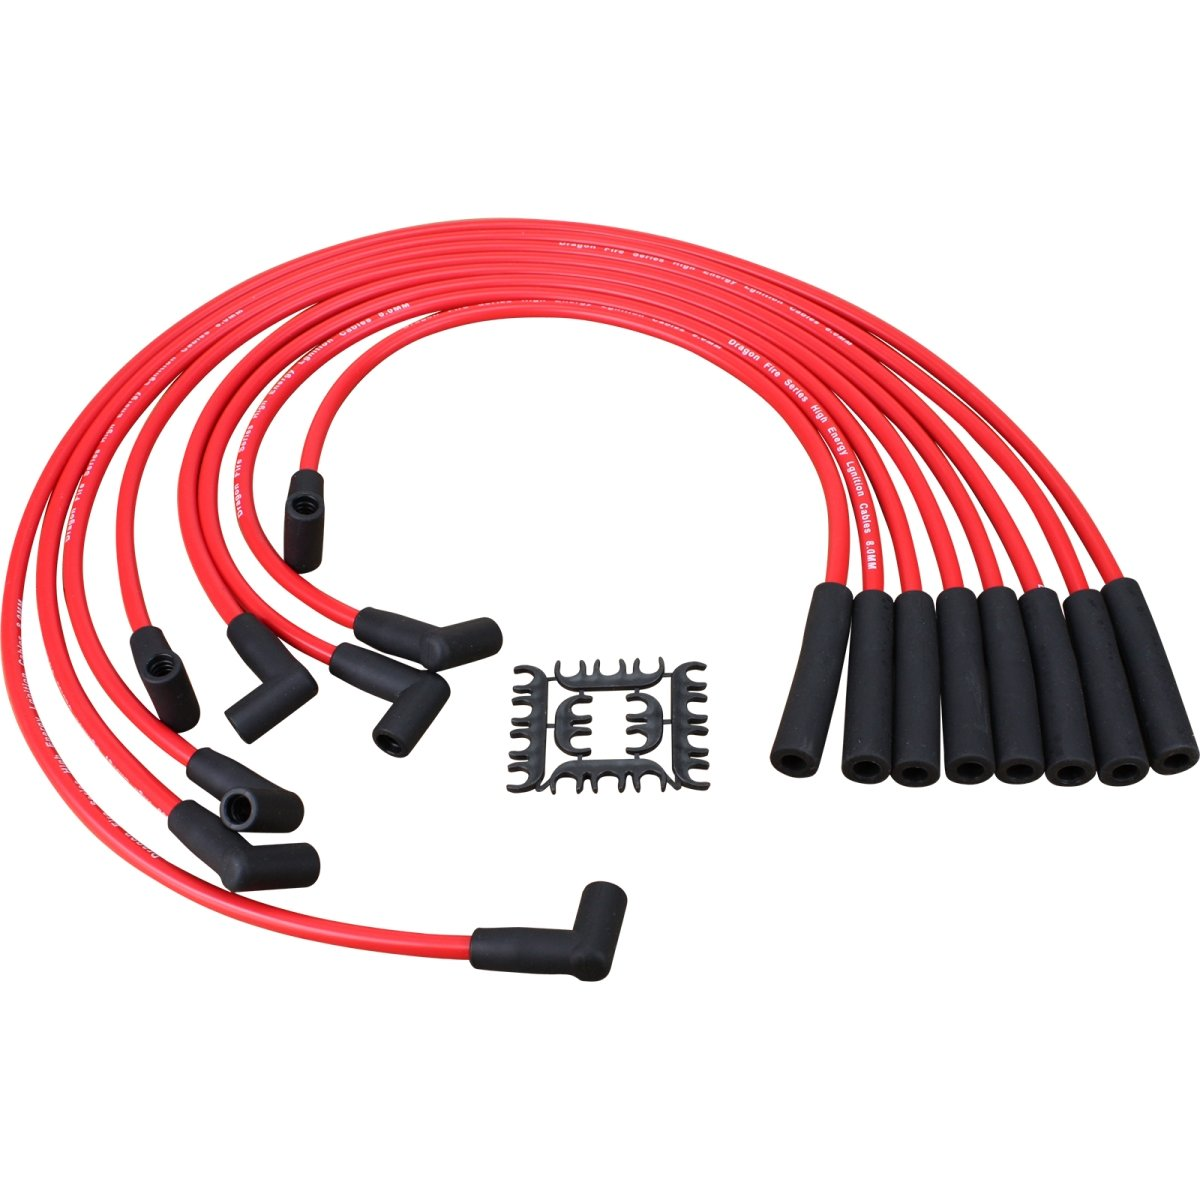 Aip Electronics Pwj122 Dragon Fire Hei Spark Plug Wires For Buick 1972 Pontiac Lemans Wiring 265 301 350 400 455 V8 Oem Fit Plugs Amazon Canada